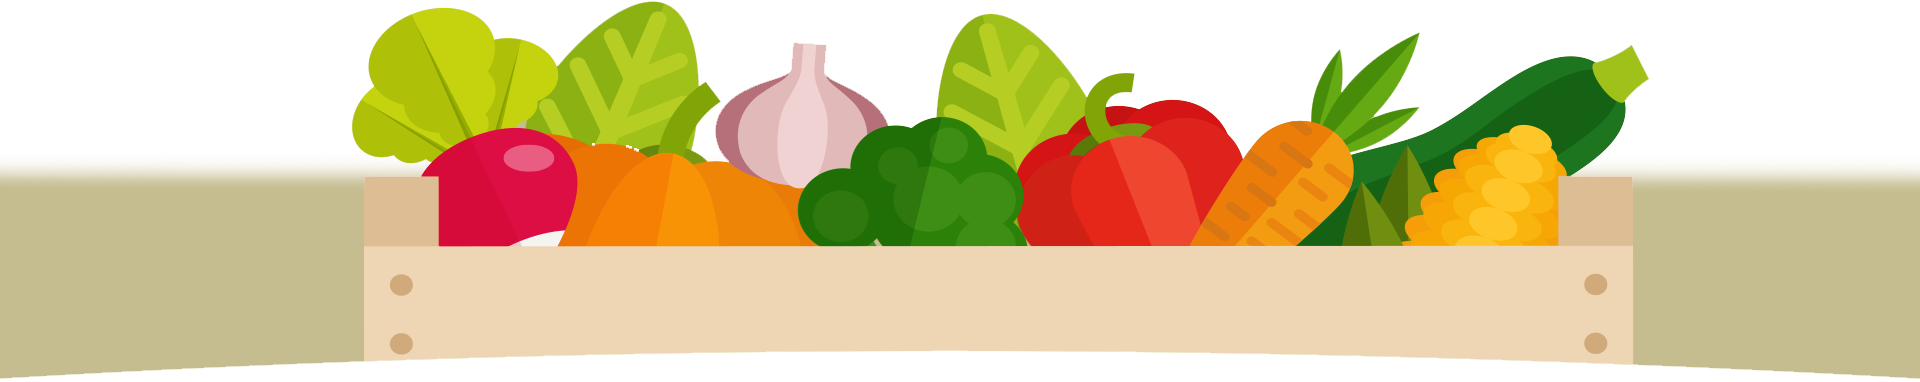 Raw or cooked vegetables. Soup clipart steamed vegetable